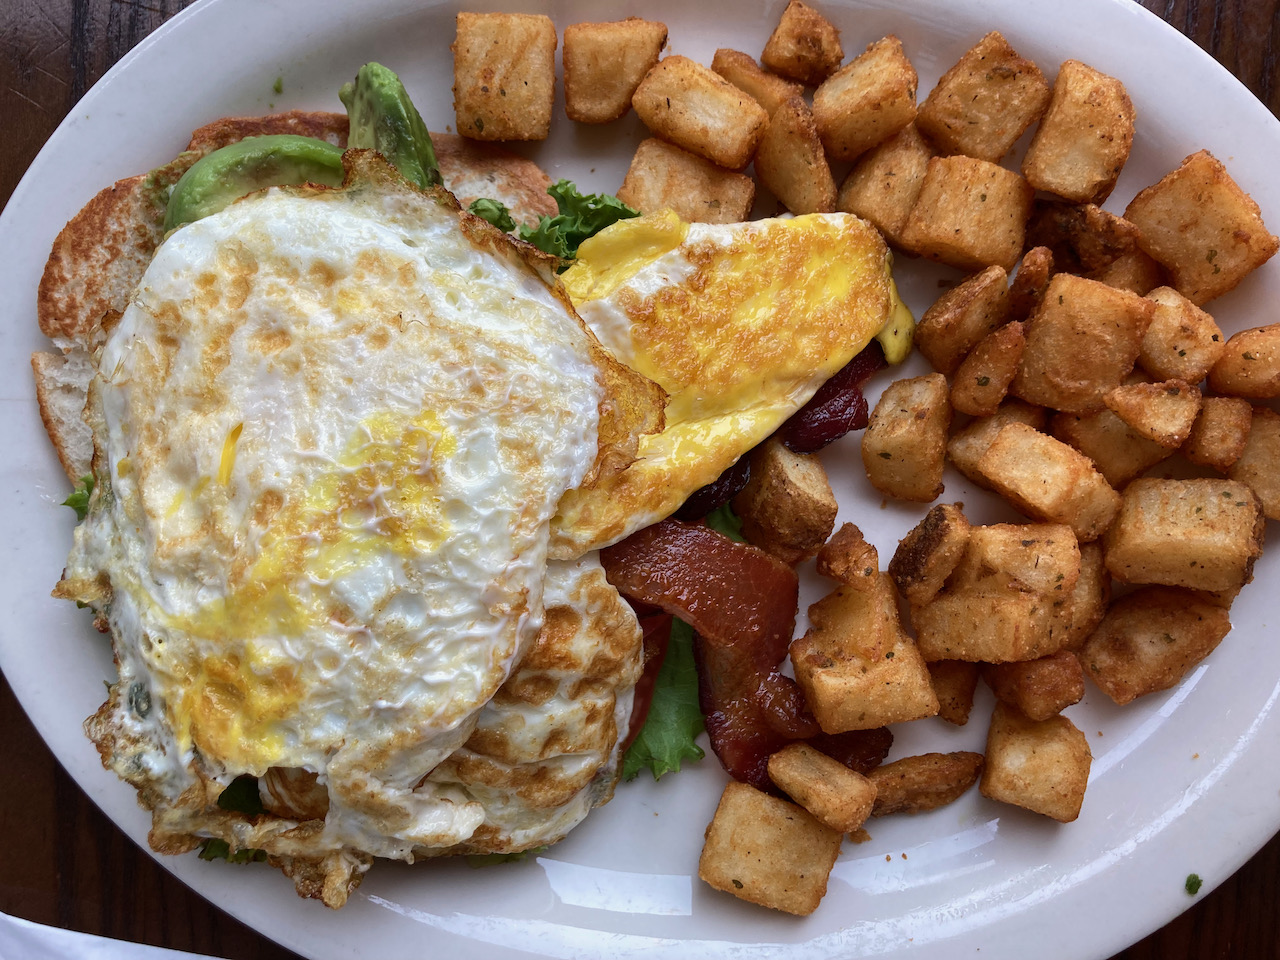 Egg and avocado on toast, with bacon and home fries.